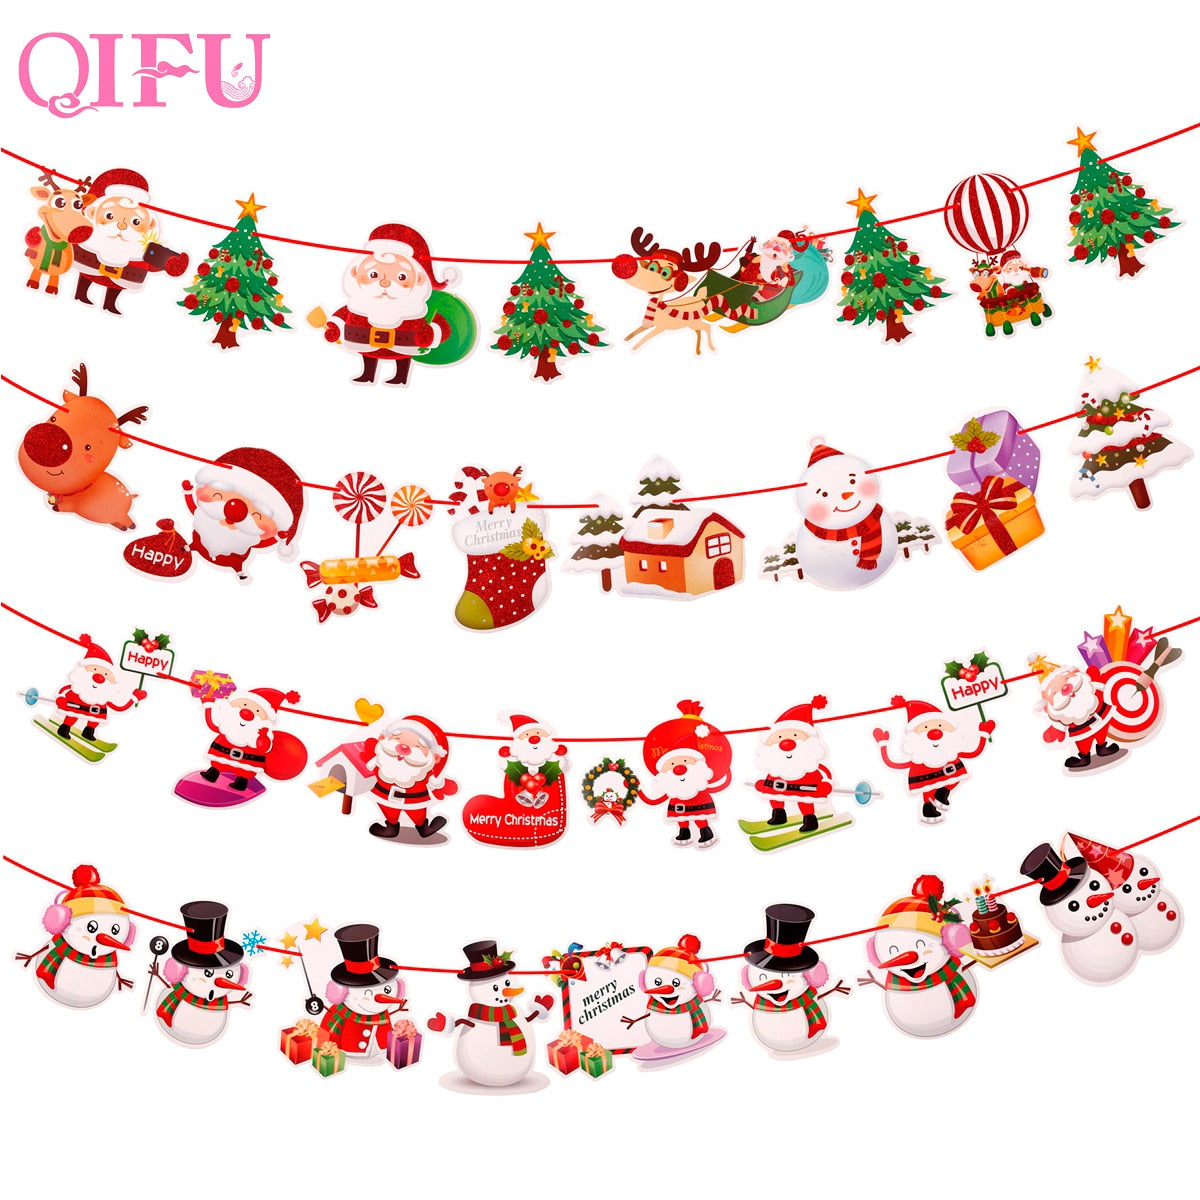 QIFU Merry Christmas Decorations For Home 2019 Navidad Xmas Tree Lights Christmas Ornaments Christmas Gifts Happy New Year 2020